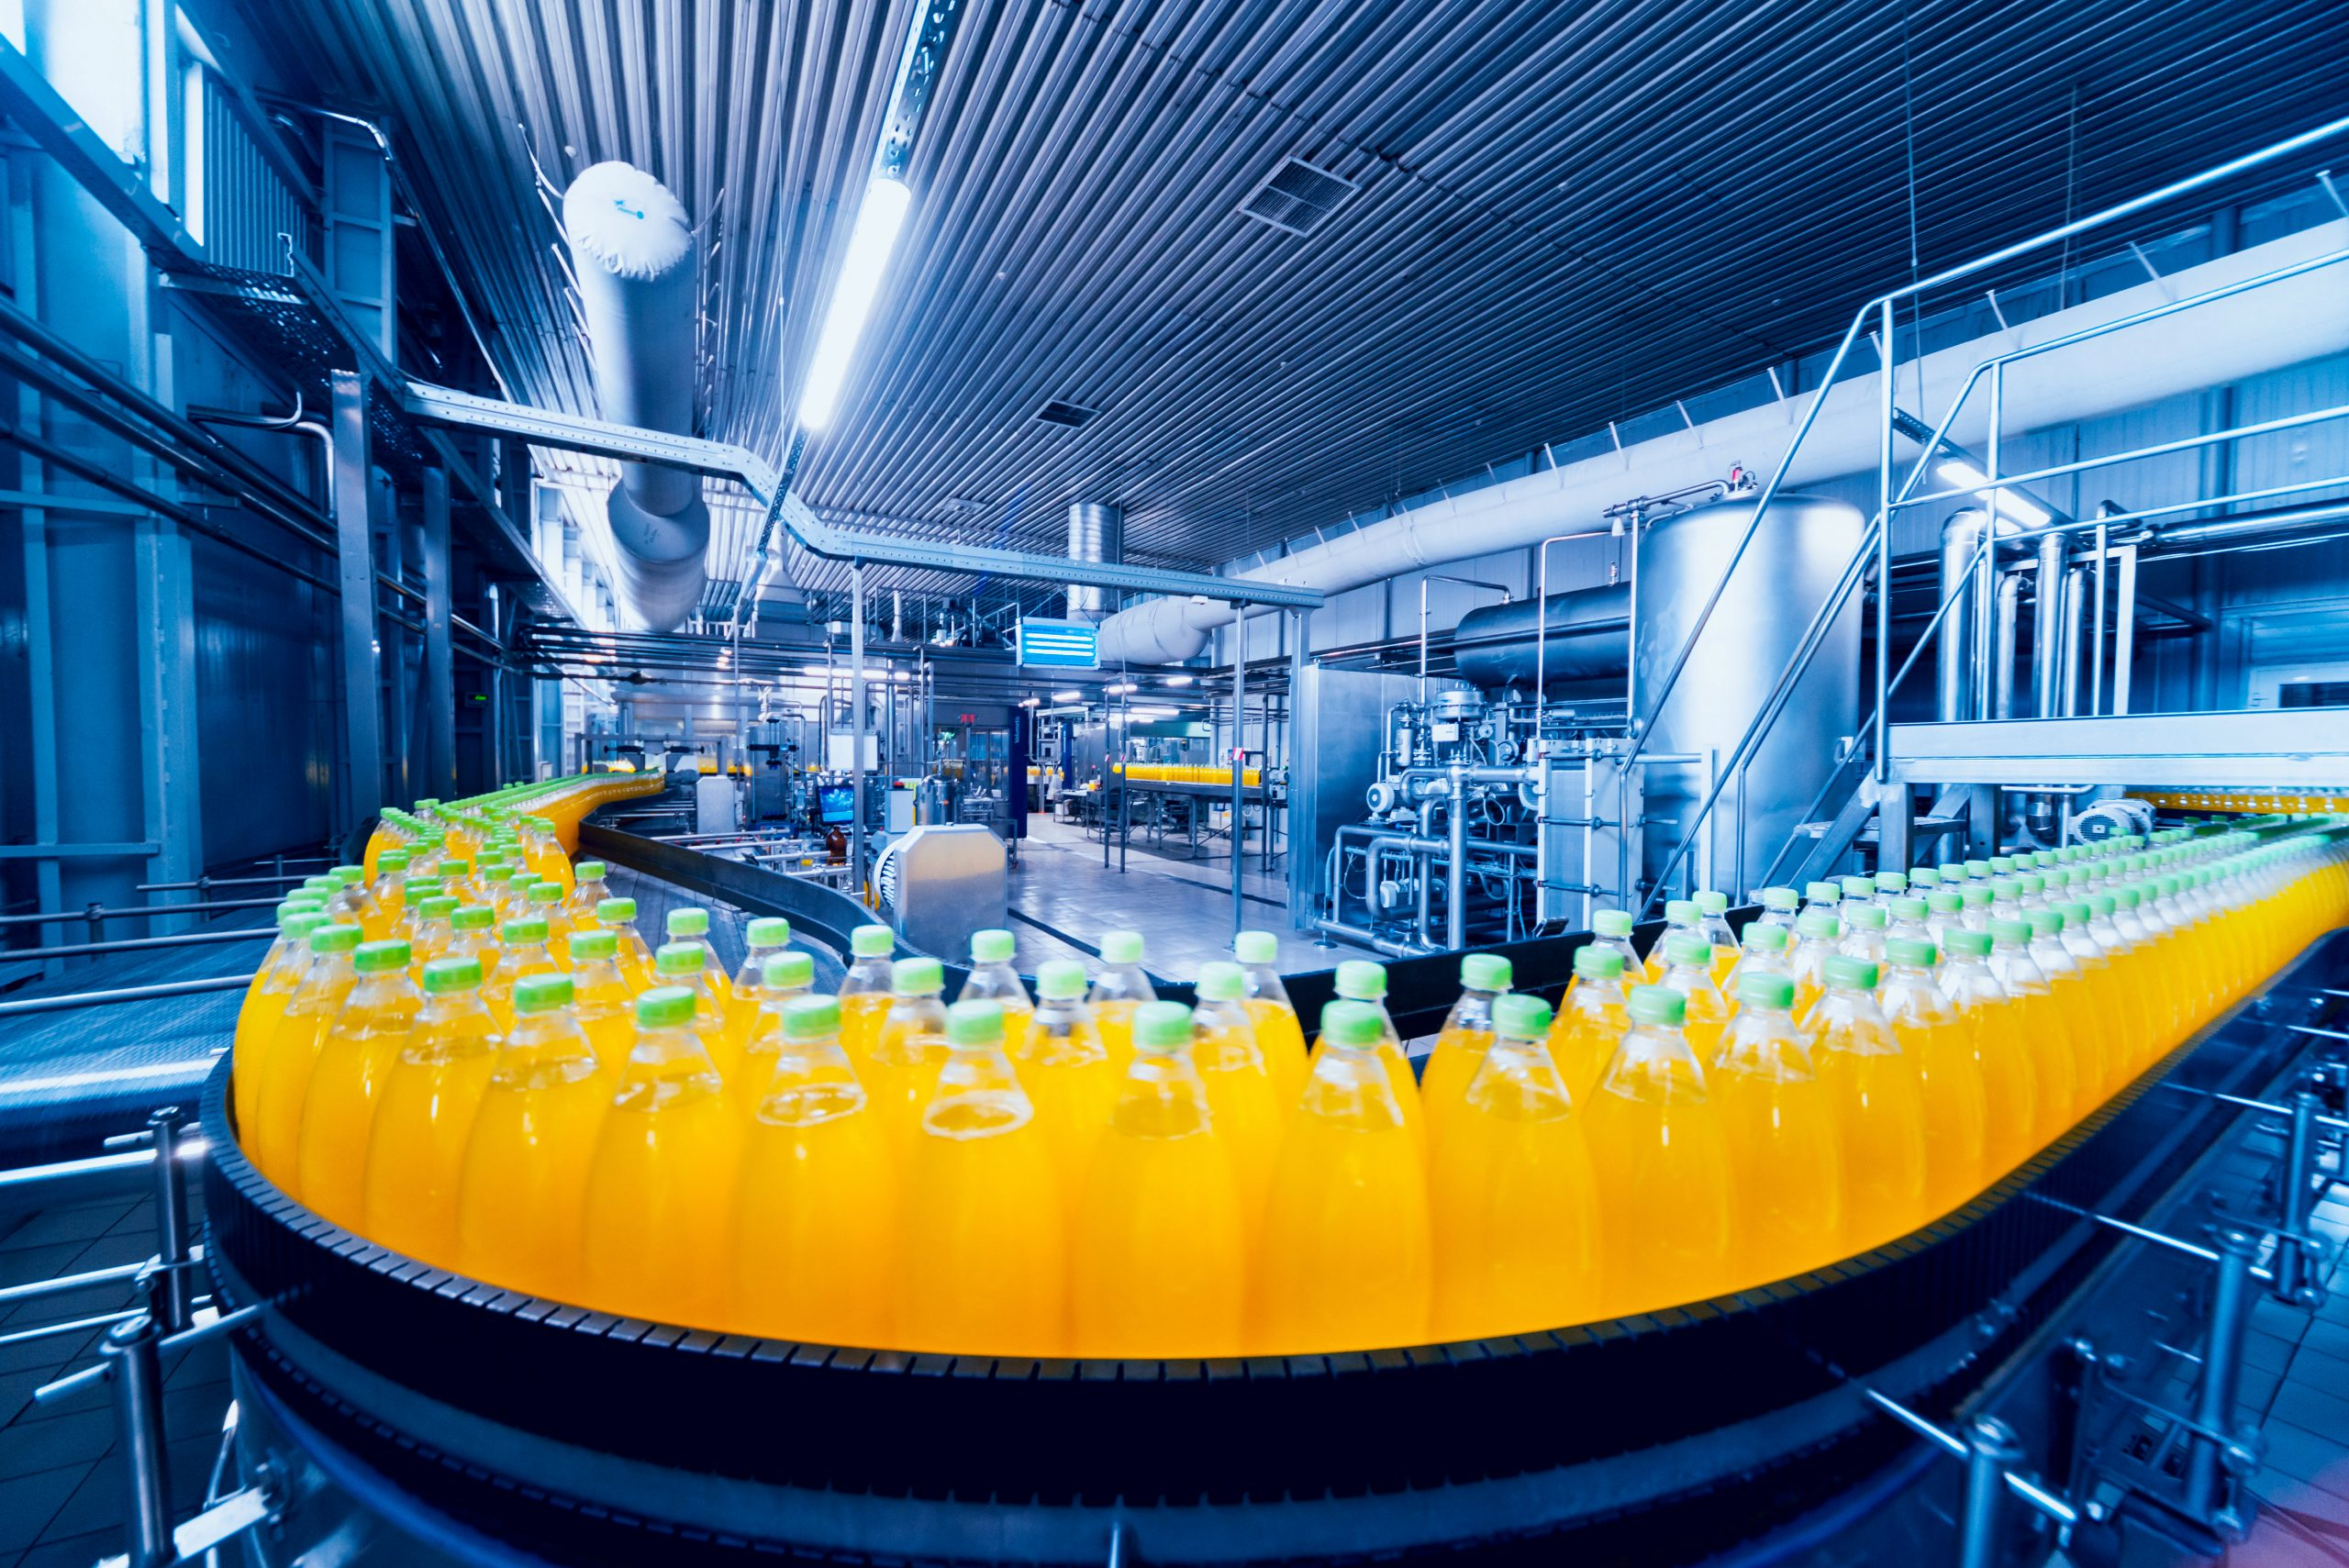 a line of juice bottles are created on an assembly line